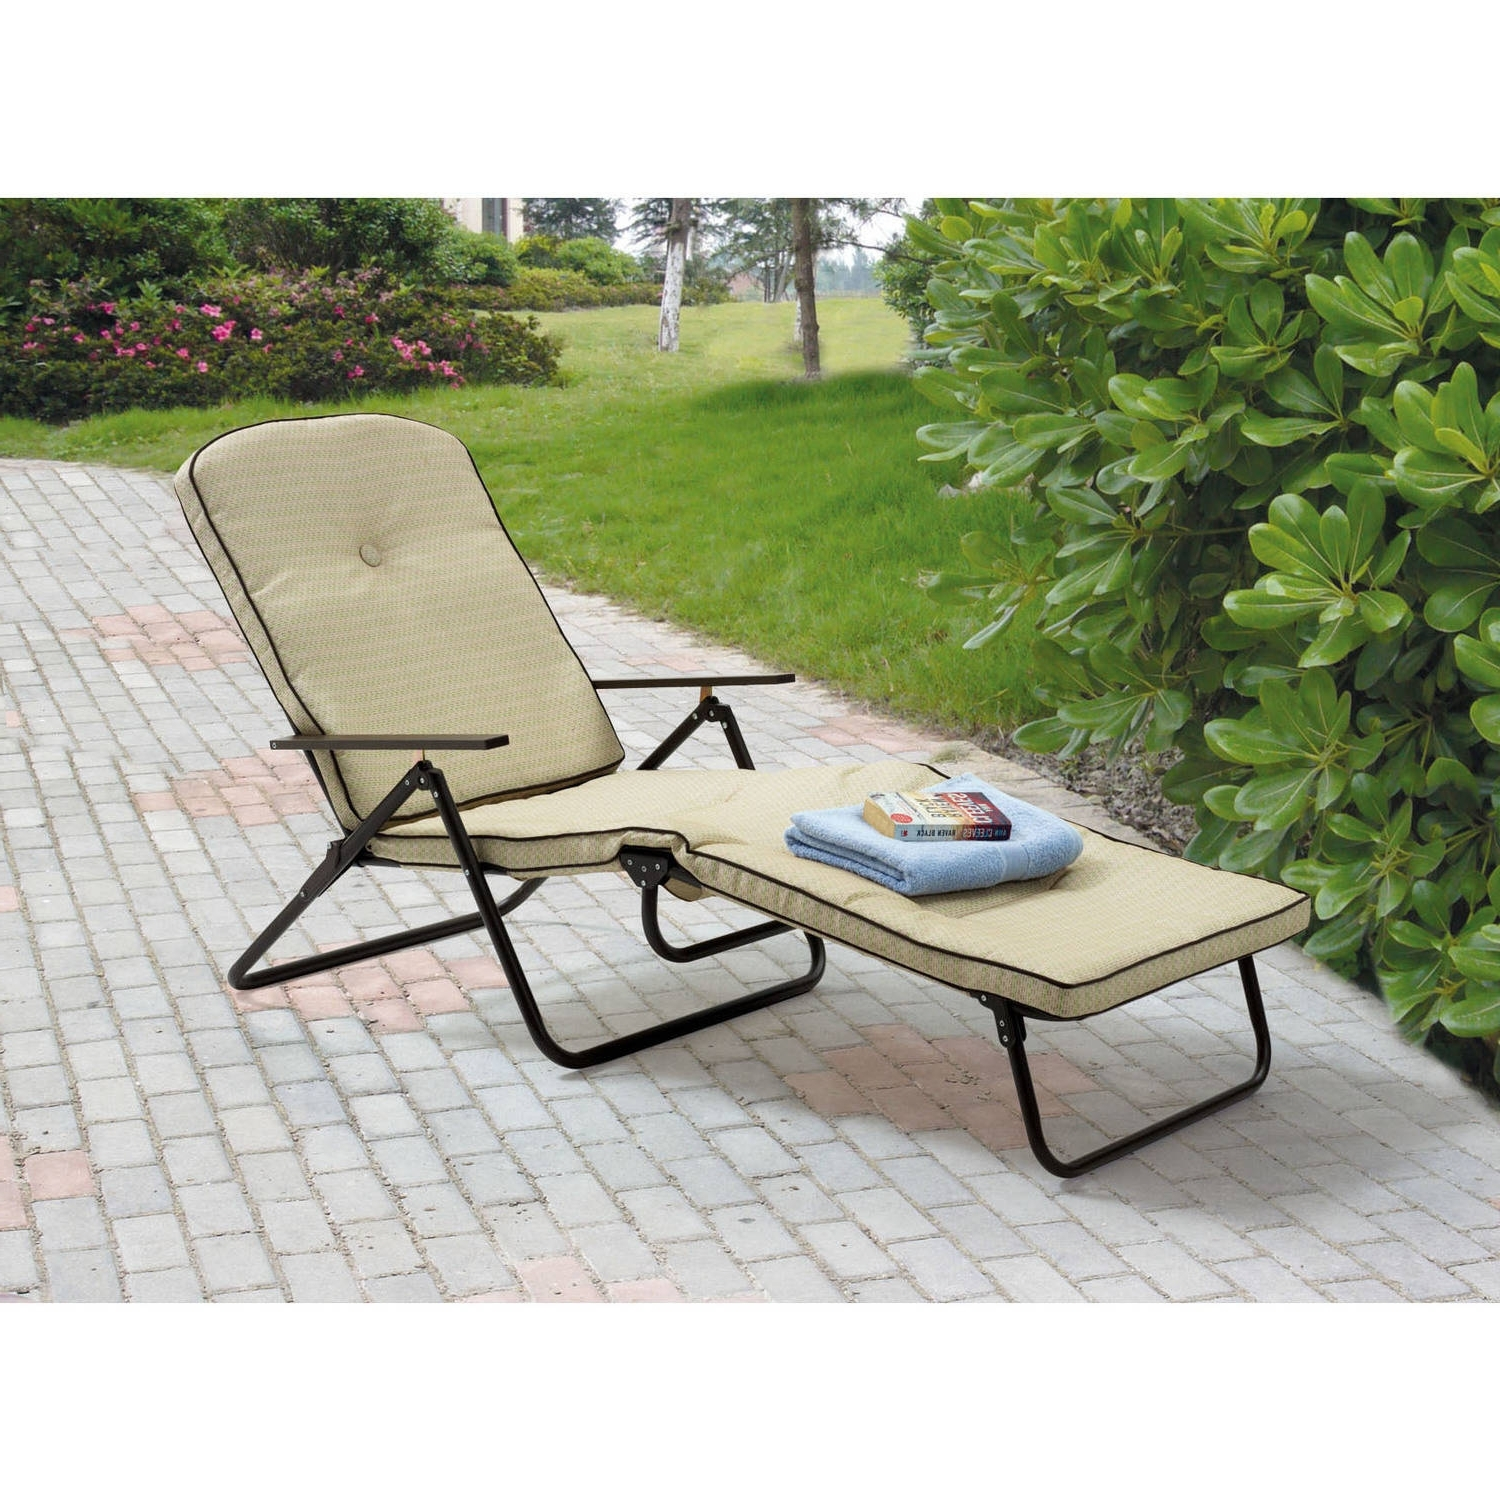 Favorite Mainstays Sand Dune Outdoor Padded Folding Chaise Lounge, Tan Intended For Walmart Outdoor Chaise Lounges (View 5 of 15)